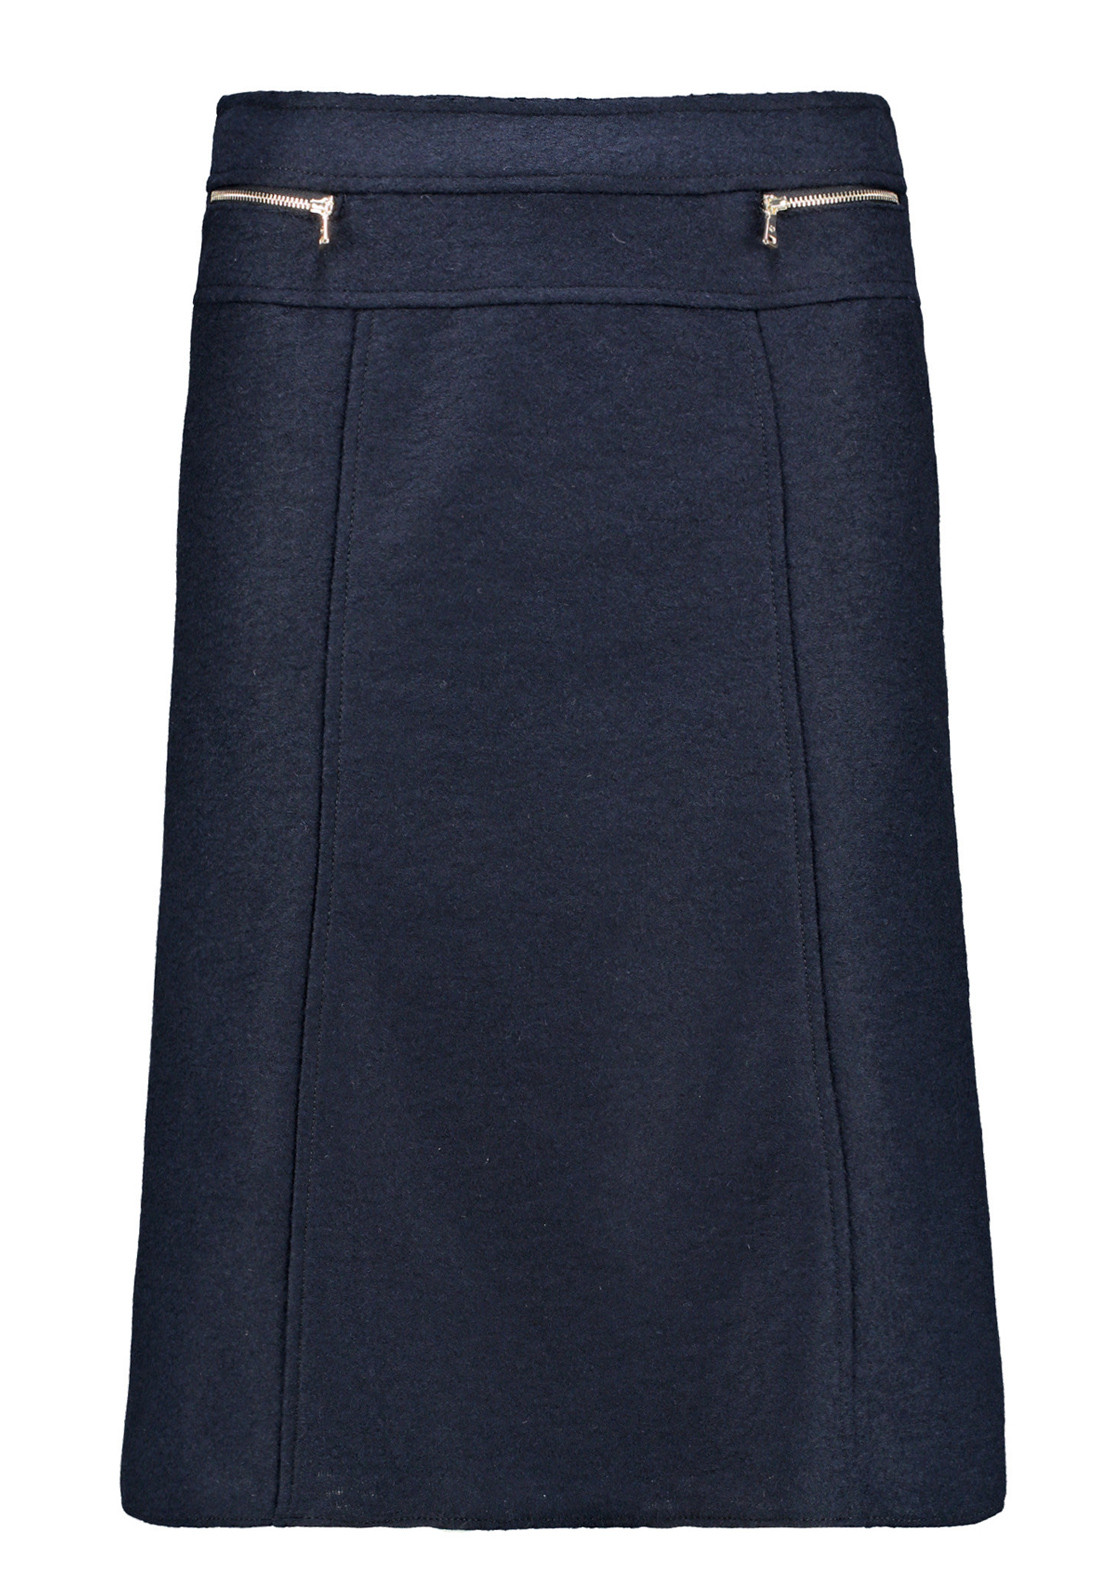 Gerry Weber Wool Blend Flared Midi Skirt, Navy